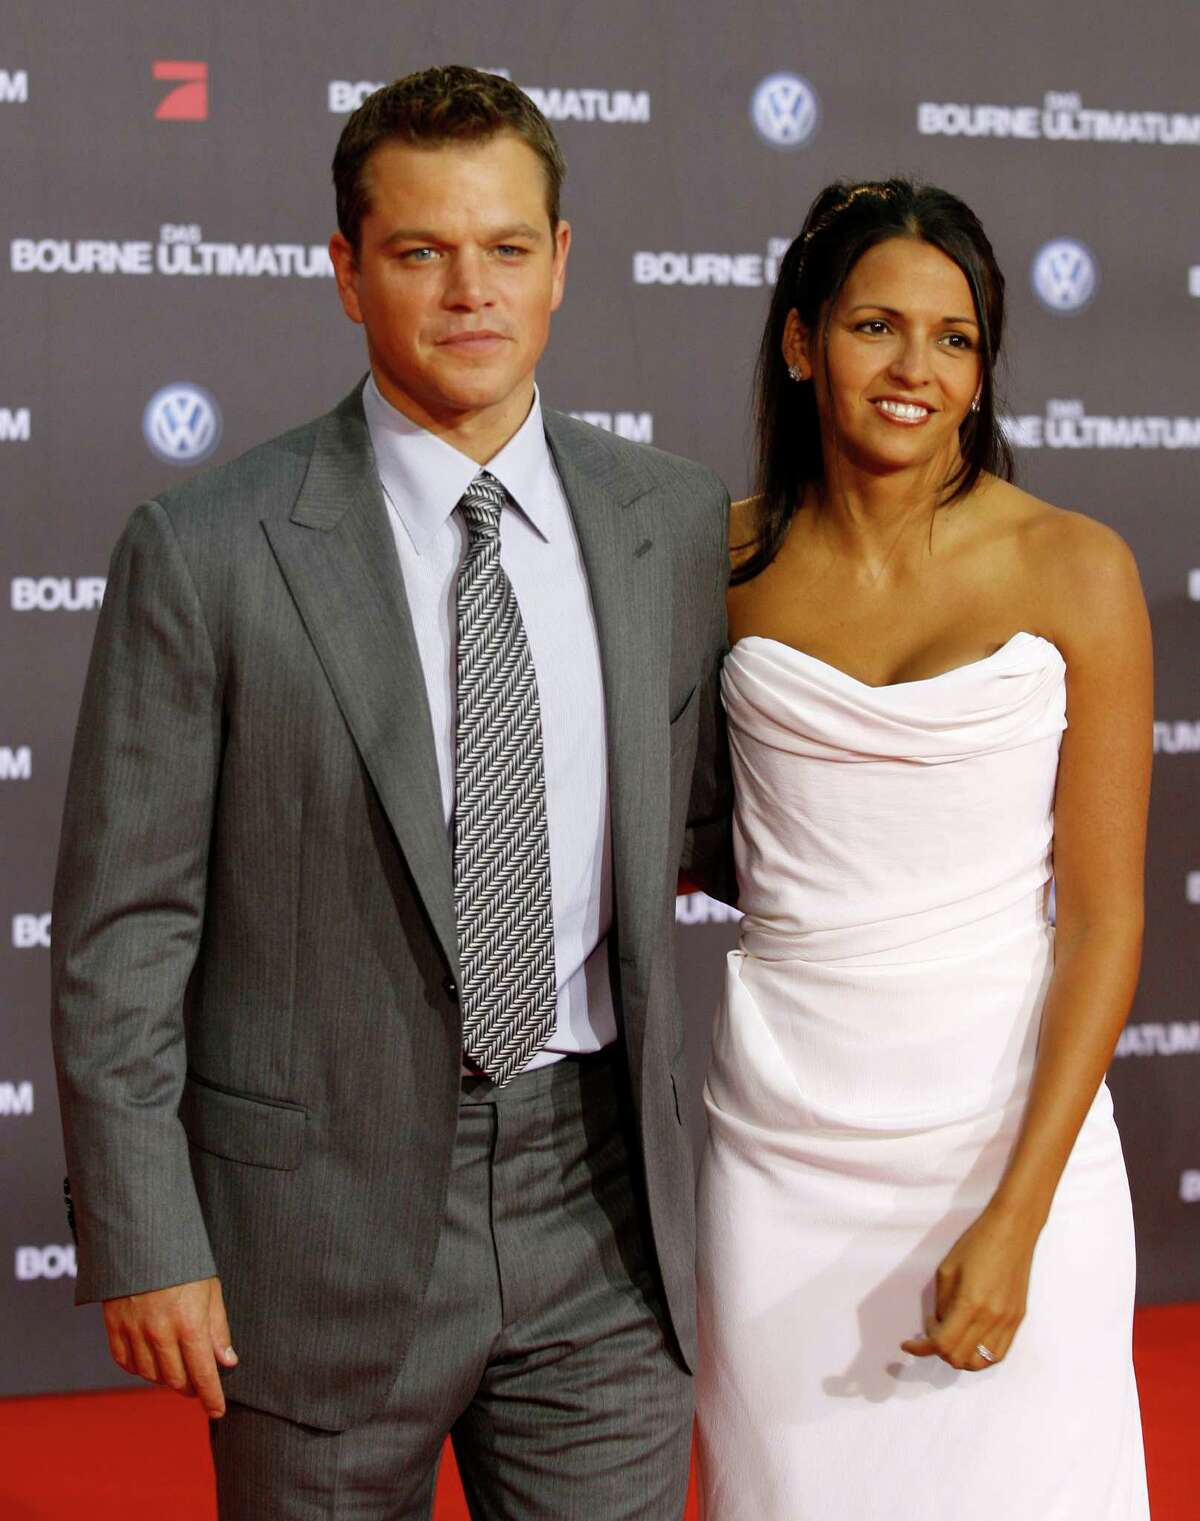 """Matt Damon met his wife Luciana Barrroso while hiding in a bar in 2002. So what's it like for a celebrity to be married to a not so famous person? For Damon, it's perfect. He doesn't have to deal with the attention. """"I got lucky. I fell in love with a civilian,"""" he recently told Esquire magazine. """"Not an actress and not a famous actress at that. Because then the attention doesn't double - it grows exponentially. Because then suddenly everybody wants to be in your bedroom."""""""